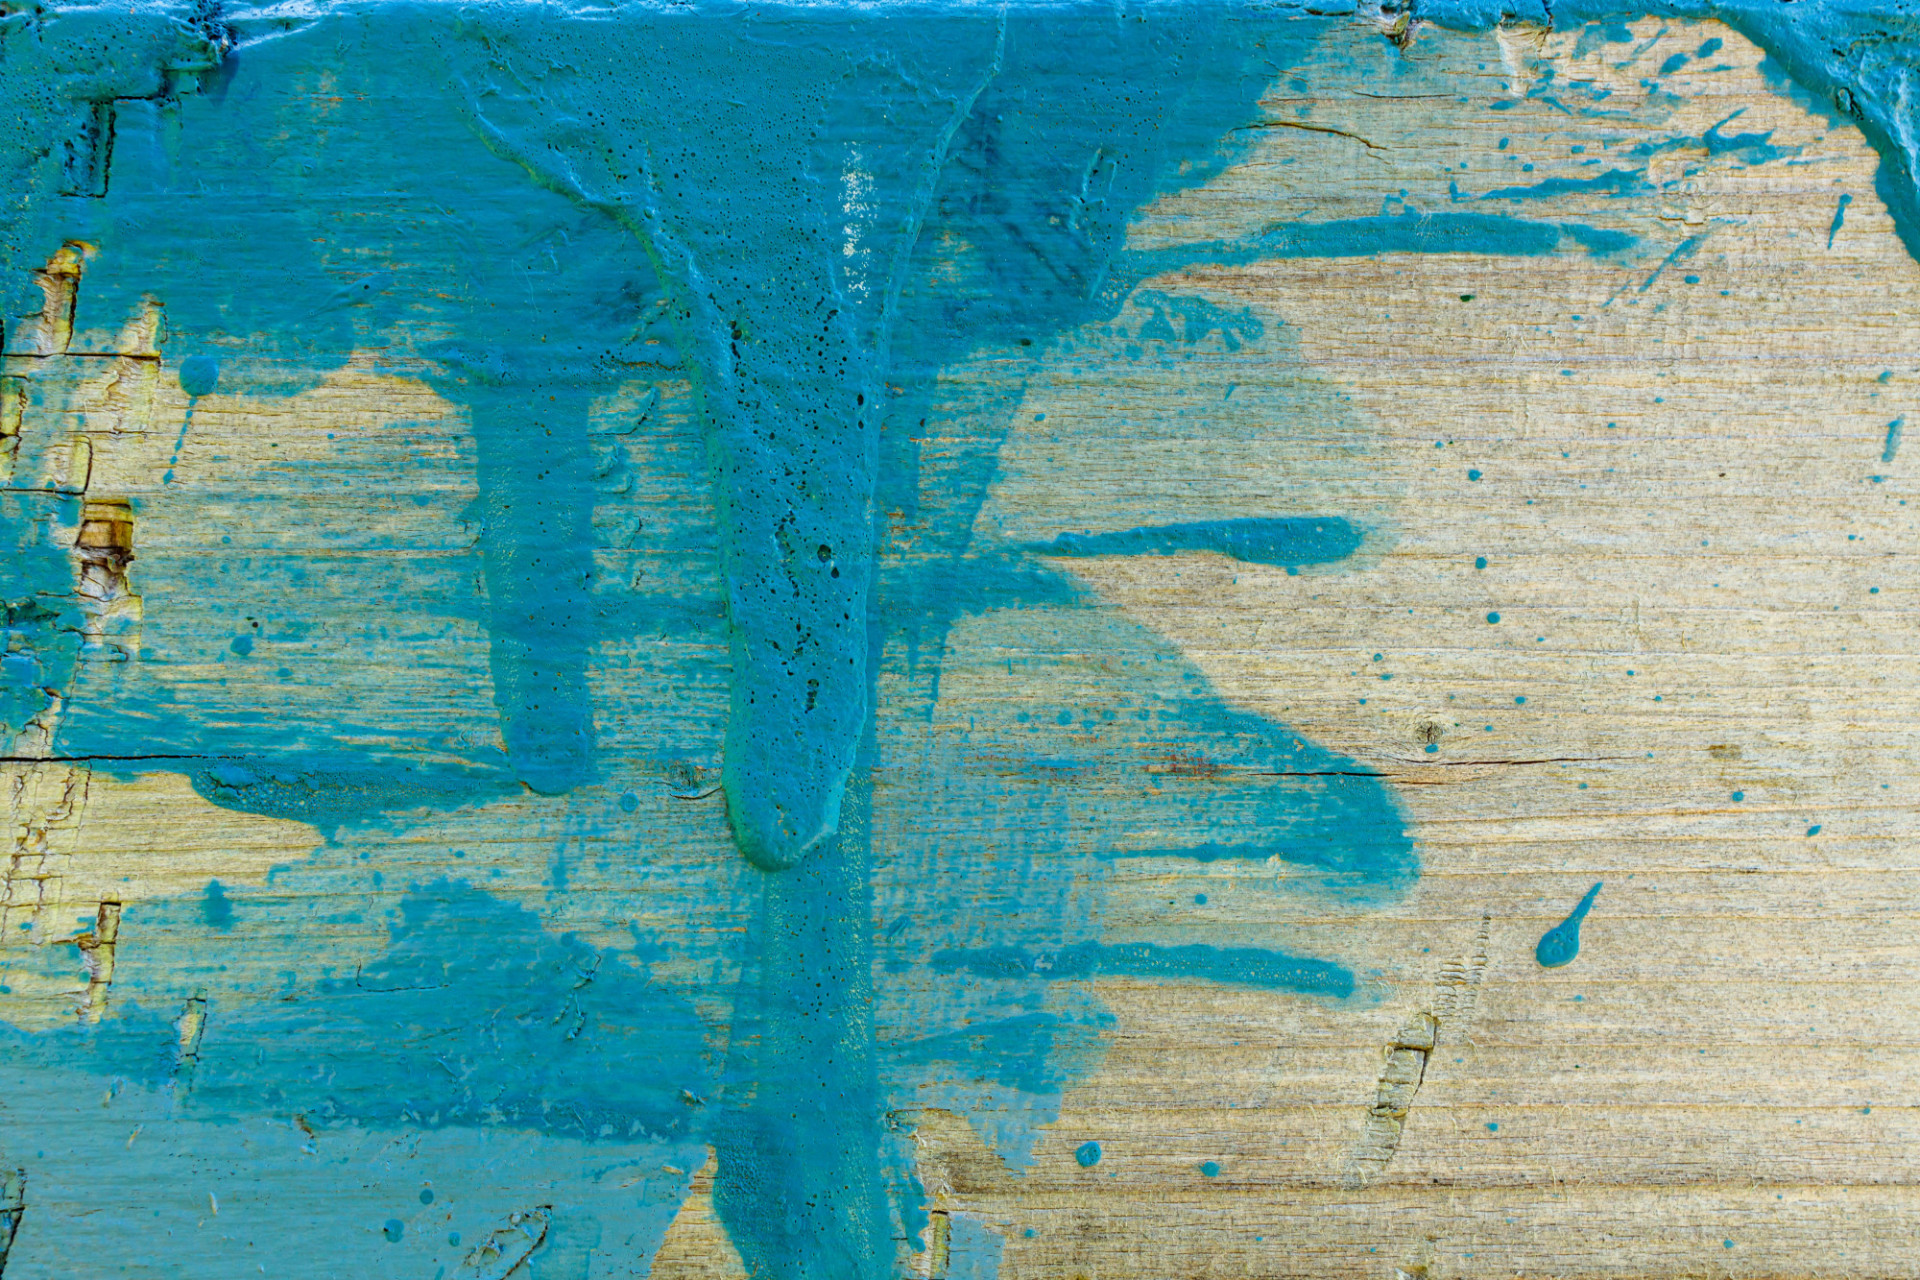 Wood with blue paint splotches